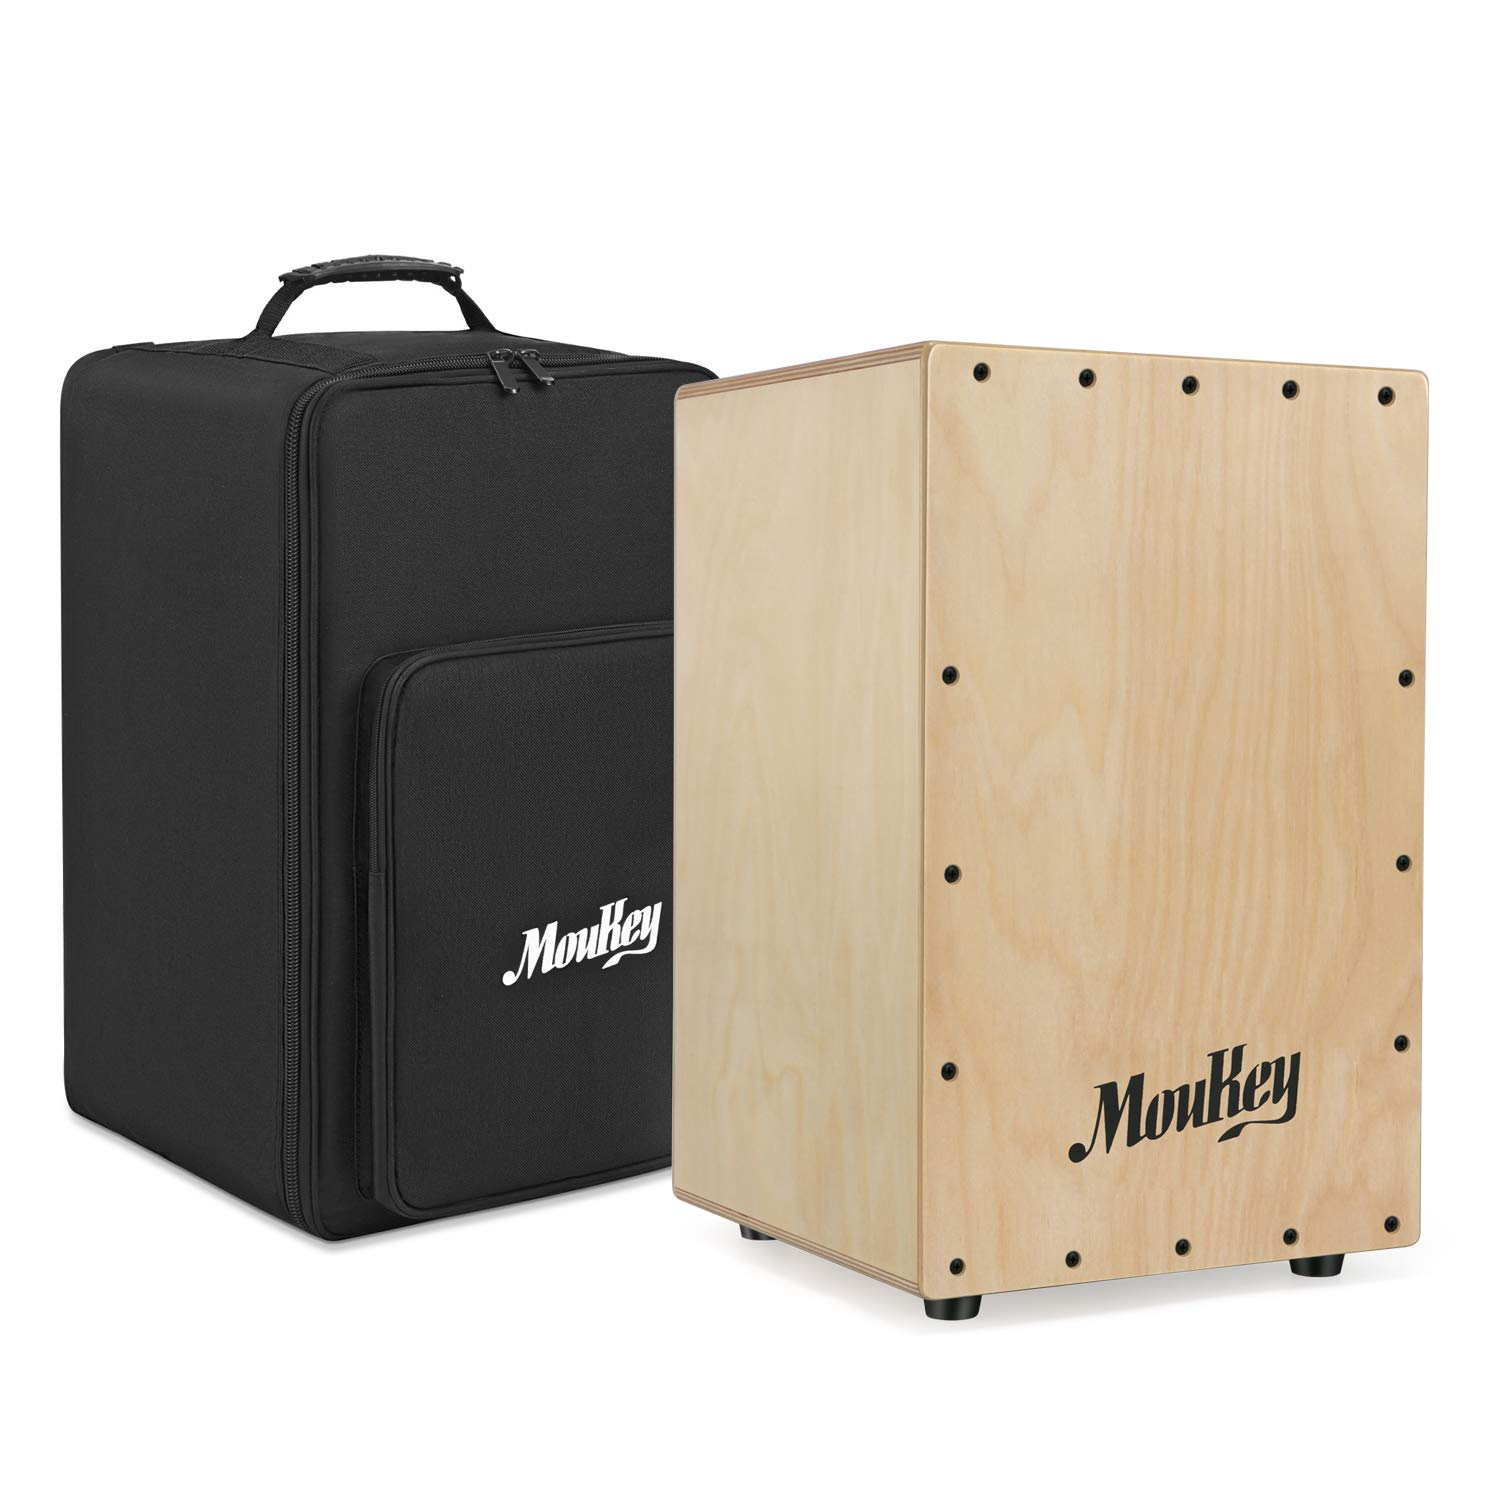 Moukey Full Size Cajon Drum DCD-1 Wooden Drum Box Birchwood Percussion Internal Metal Strings with Bag by Moukey